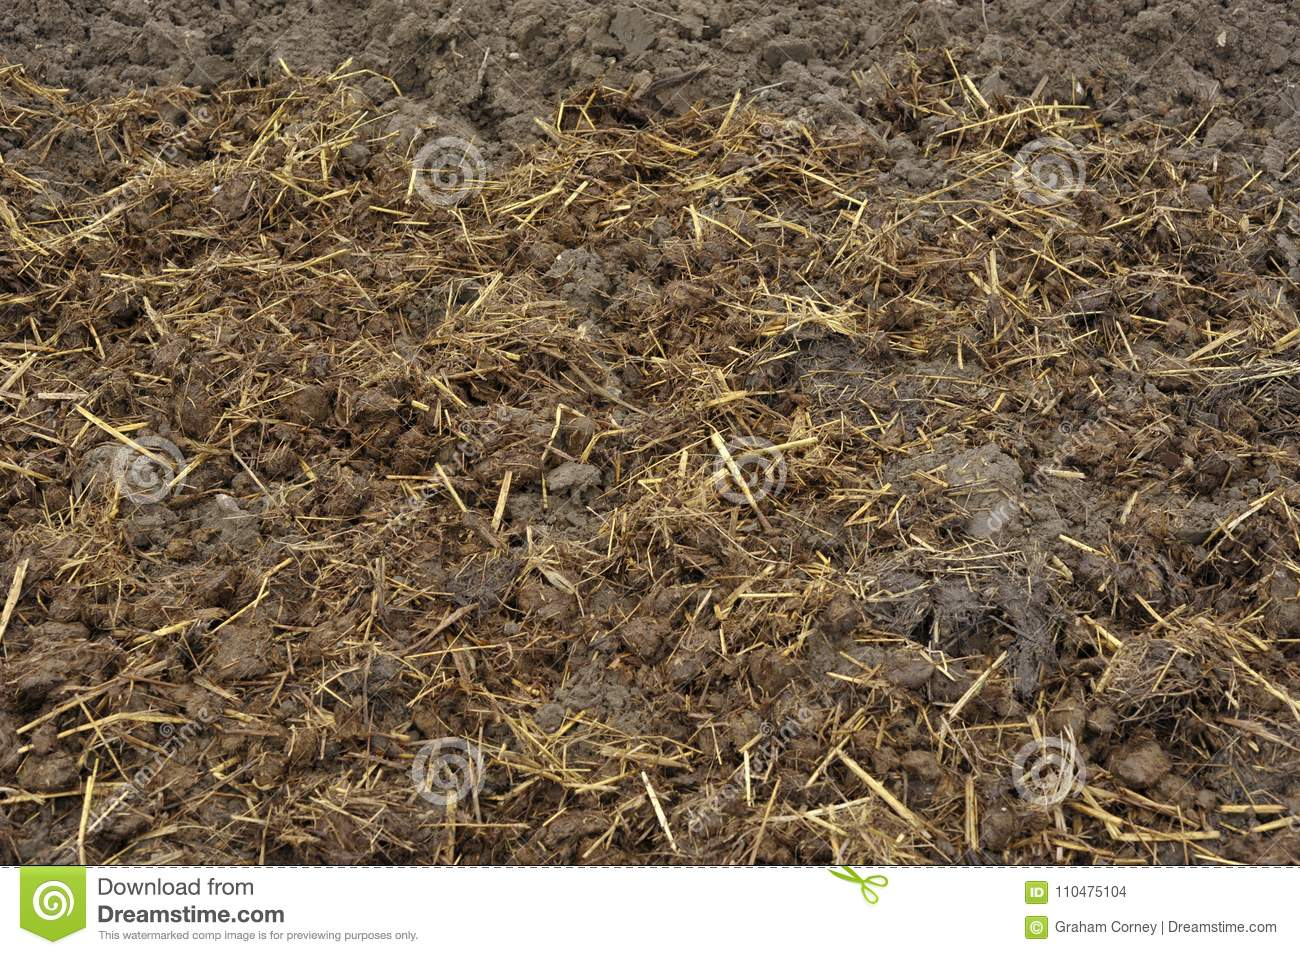 Download Soil With Horse Manure Covering Stock Photo   Image Of Manure,  Organic: 110475104